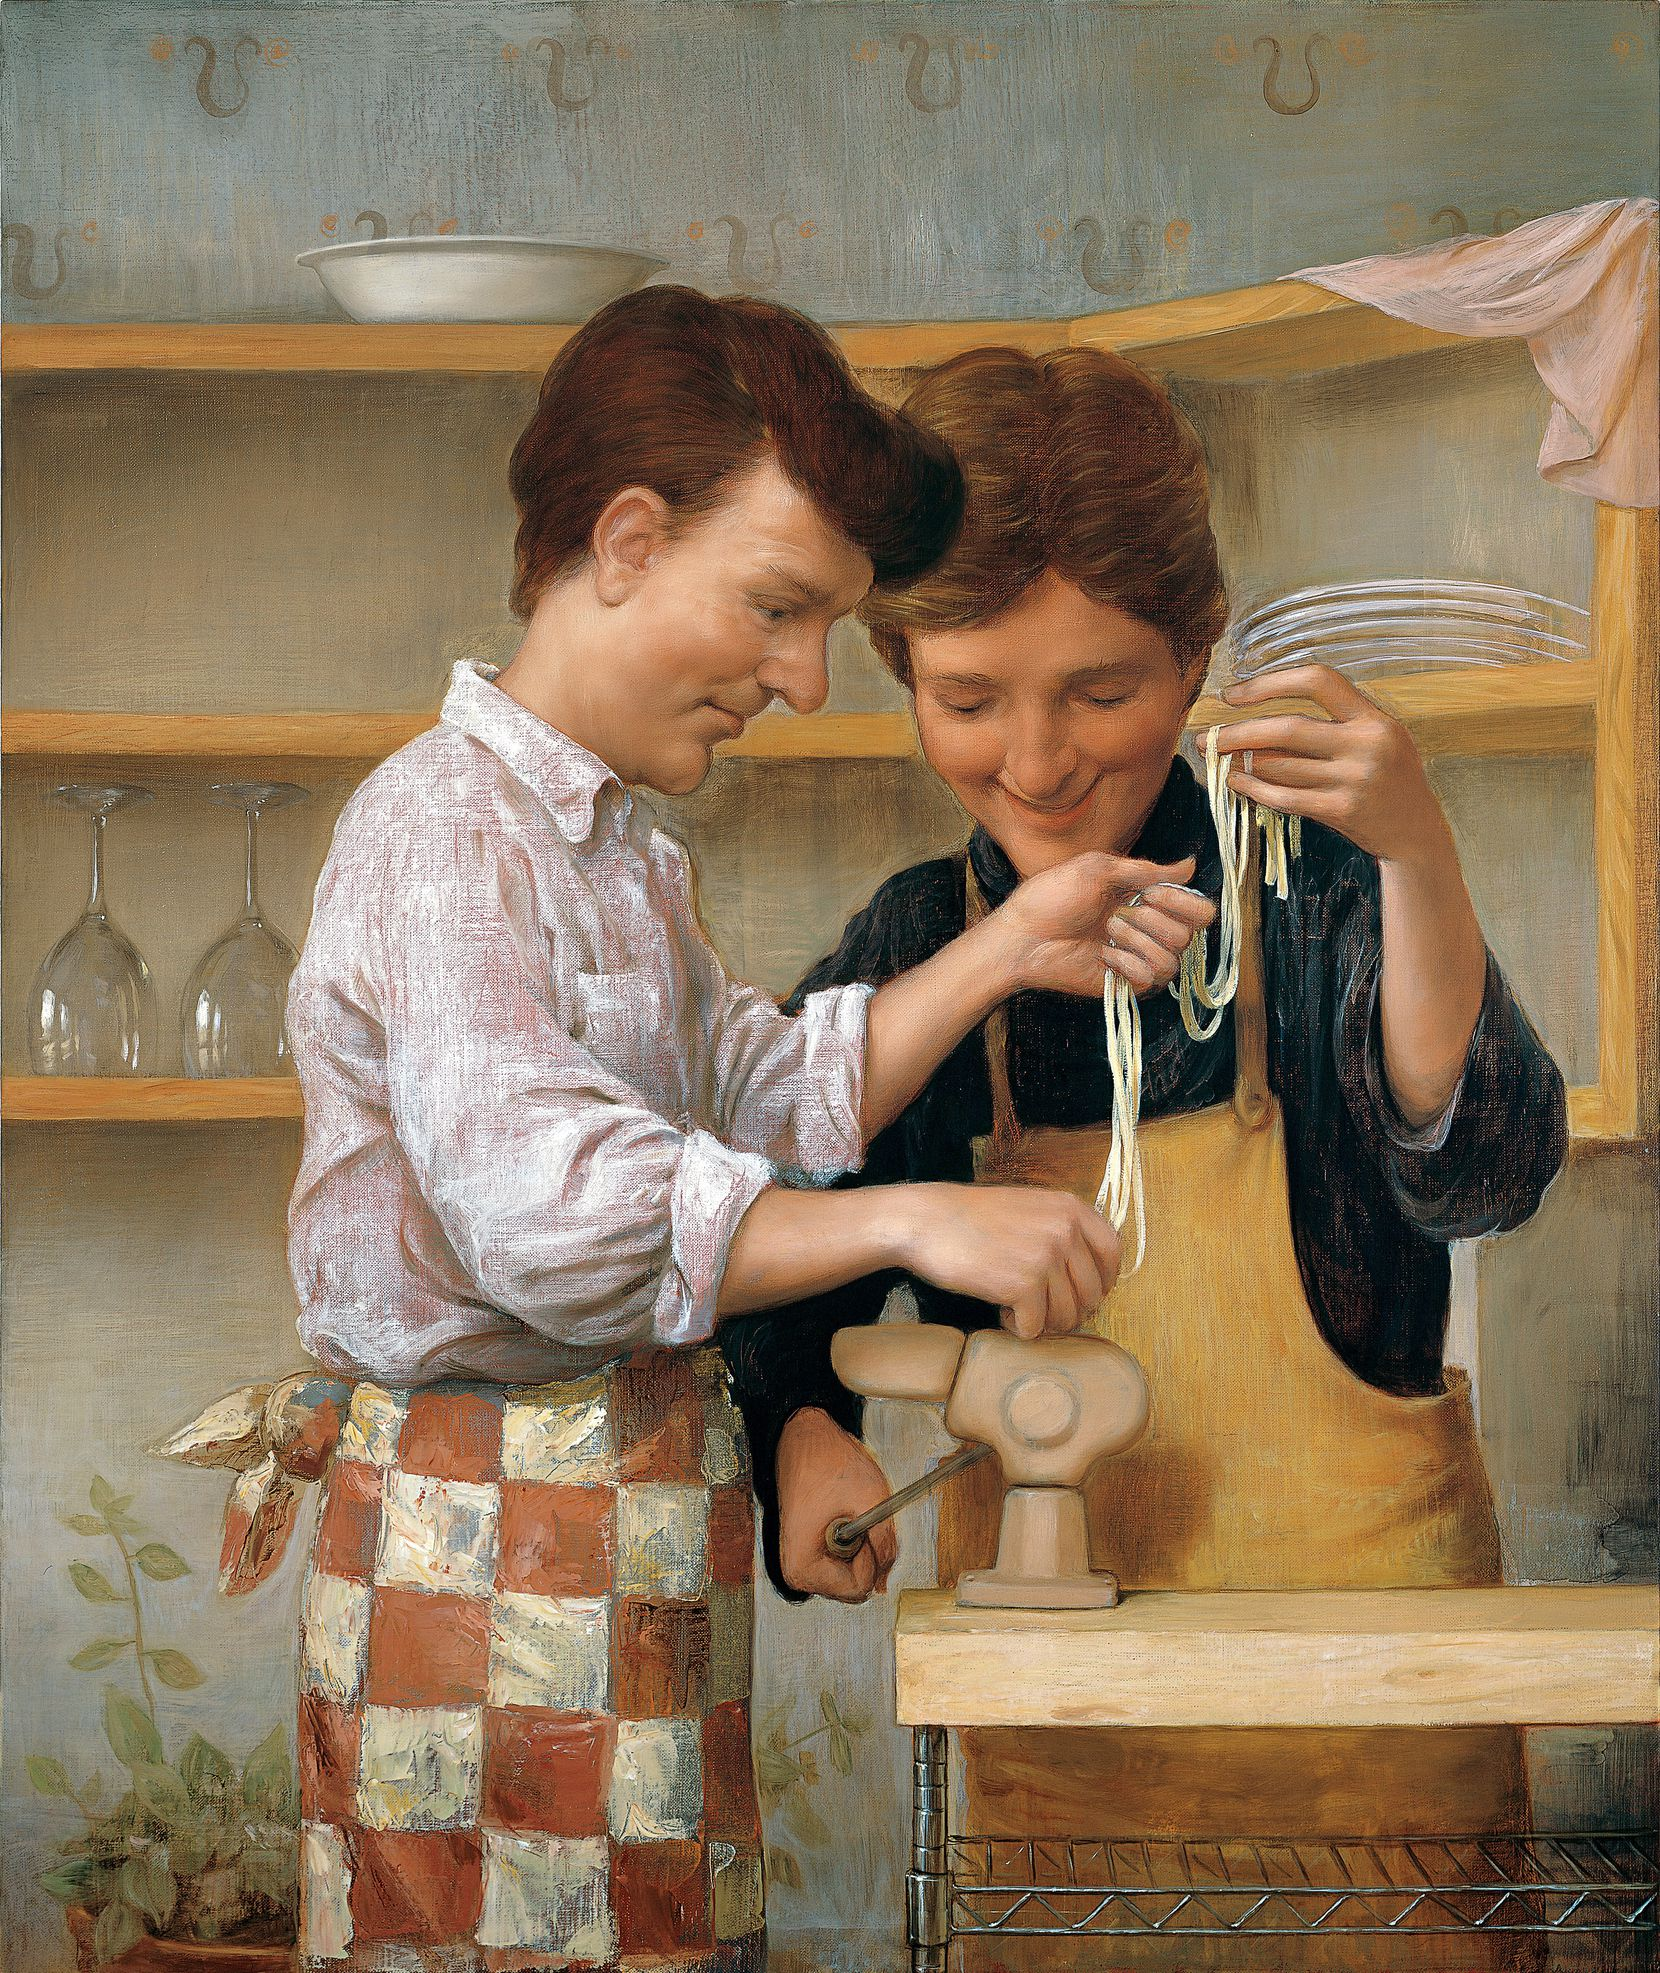 """John Currin's sweetest portrayal of masculinity comes when he paints two men together, as in """"Homemade Pasta,"""" 1999. (Oil on canvas. 50 x 42 inches.)"""